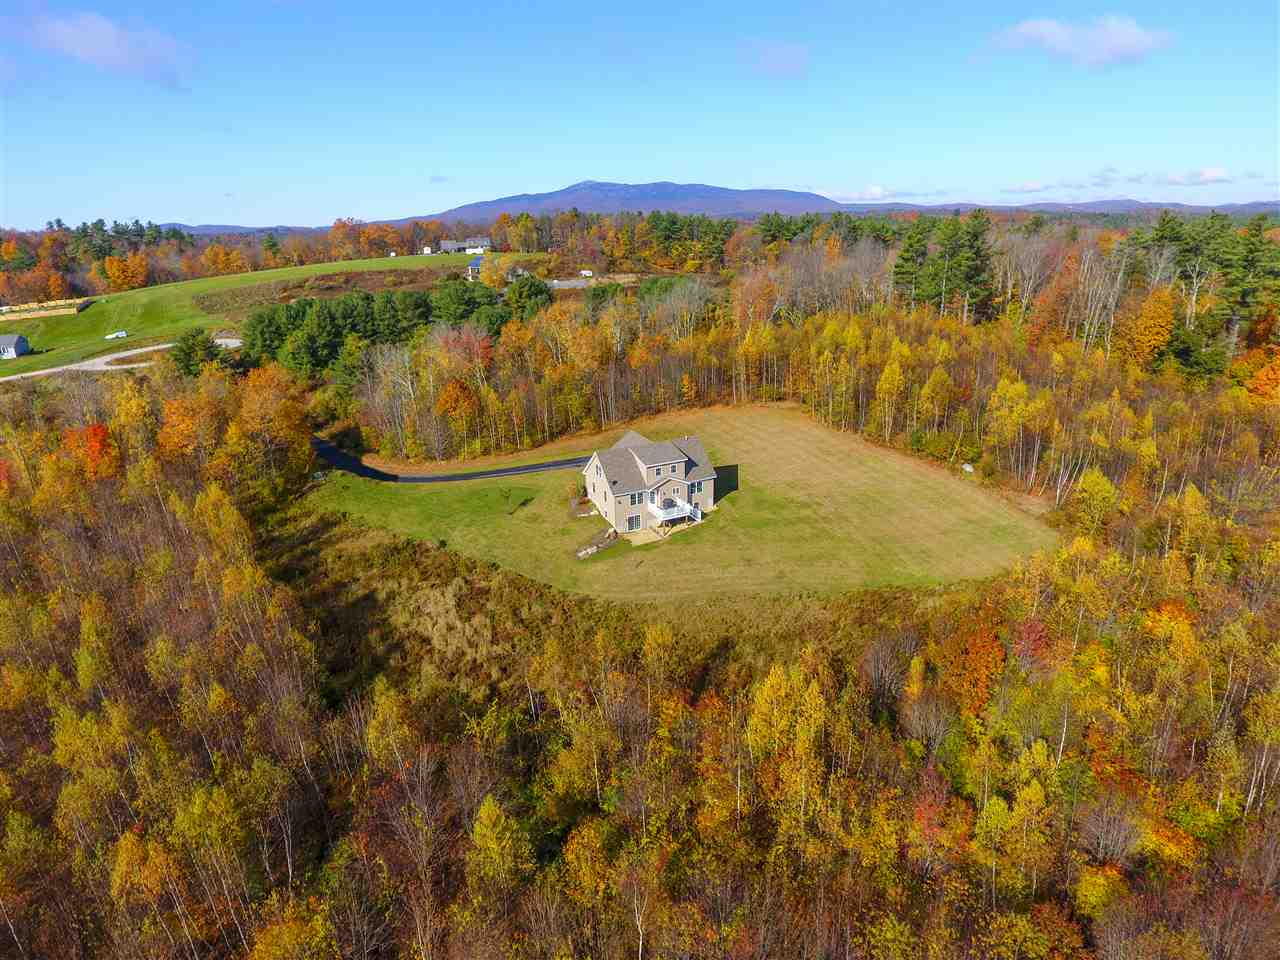 MLS 4783714: 98 Overview Drive, Jaffrey NH